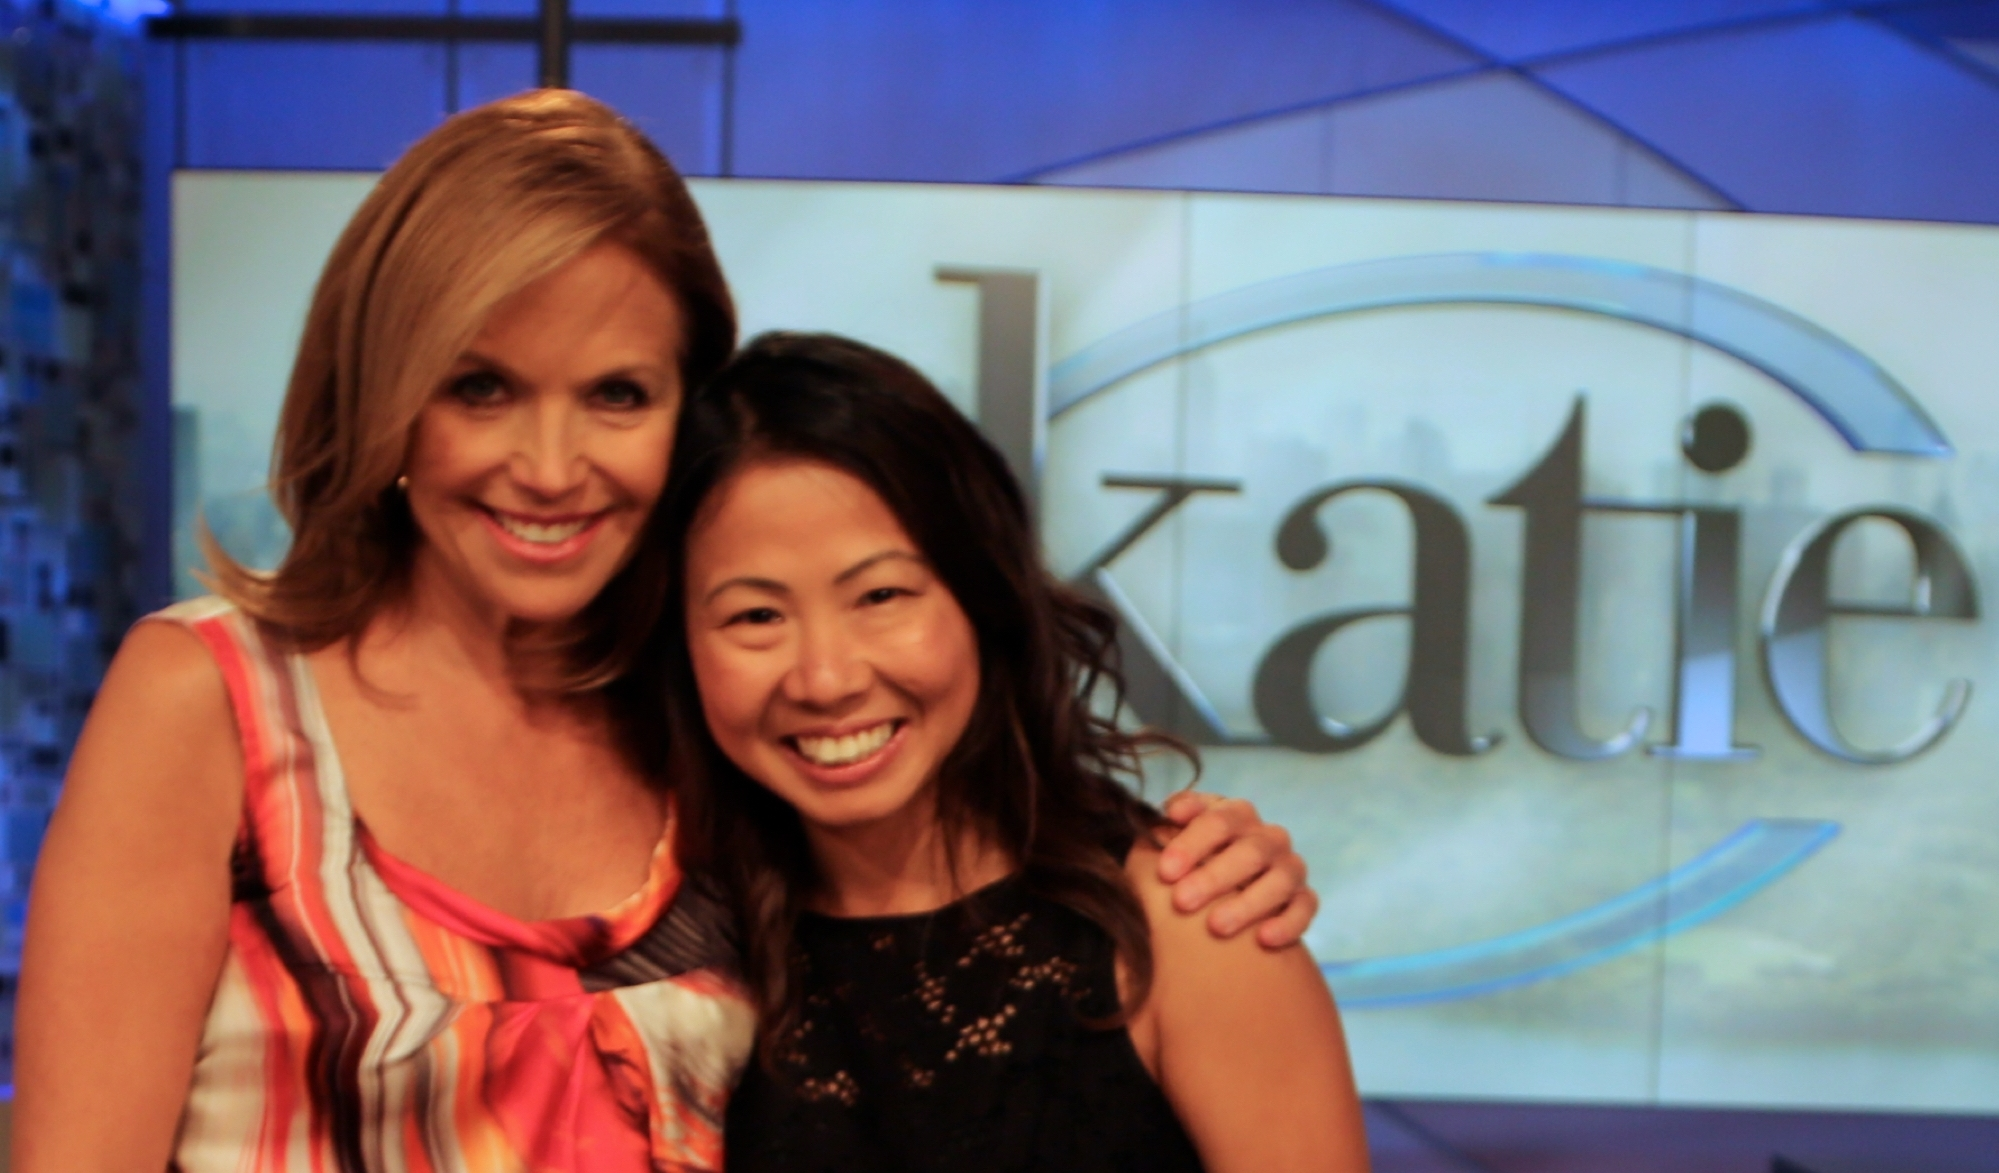 THE KATIE SHOW - Journalist Katie Couric dedicated an entire episode of her TV show on ABC on the topic of breadwinner wives, titled Alpha Women. She loved The Big Flip so much that she flew director Izzy Chan and one of our Big Flip families, Bonnie and Chip (and their newborn daughter Mabel Mei!) to New York for an interview.